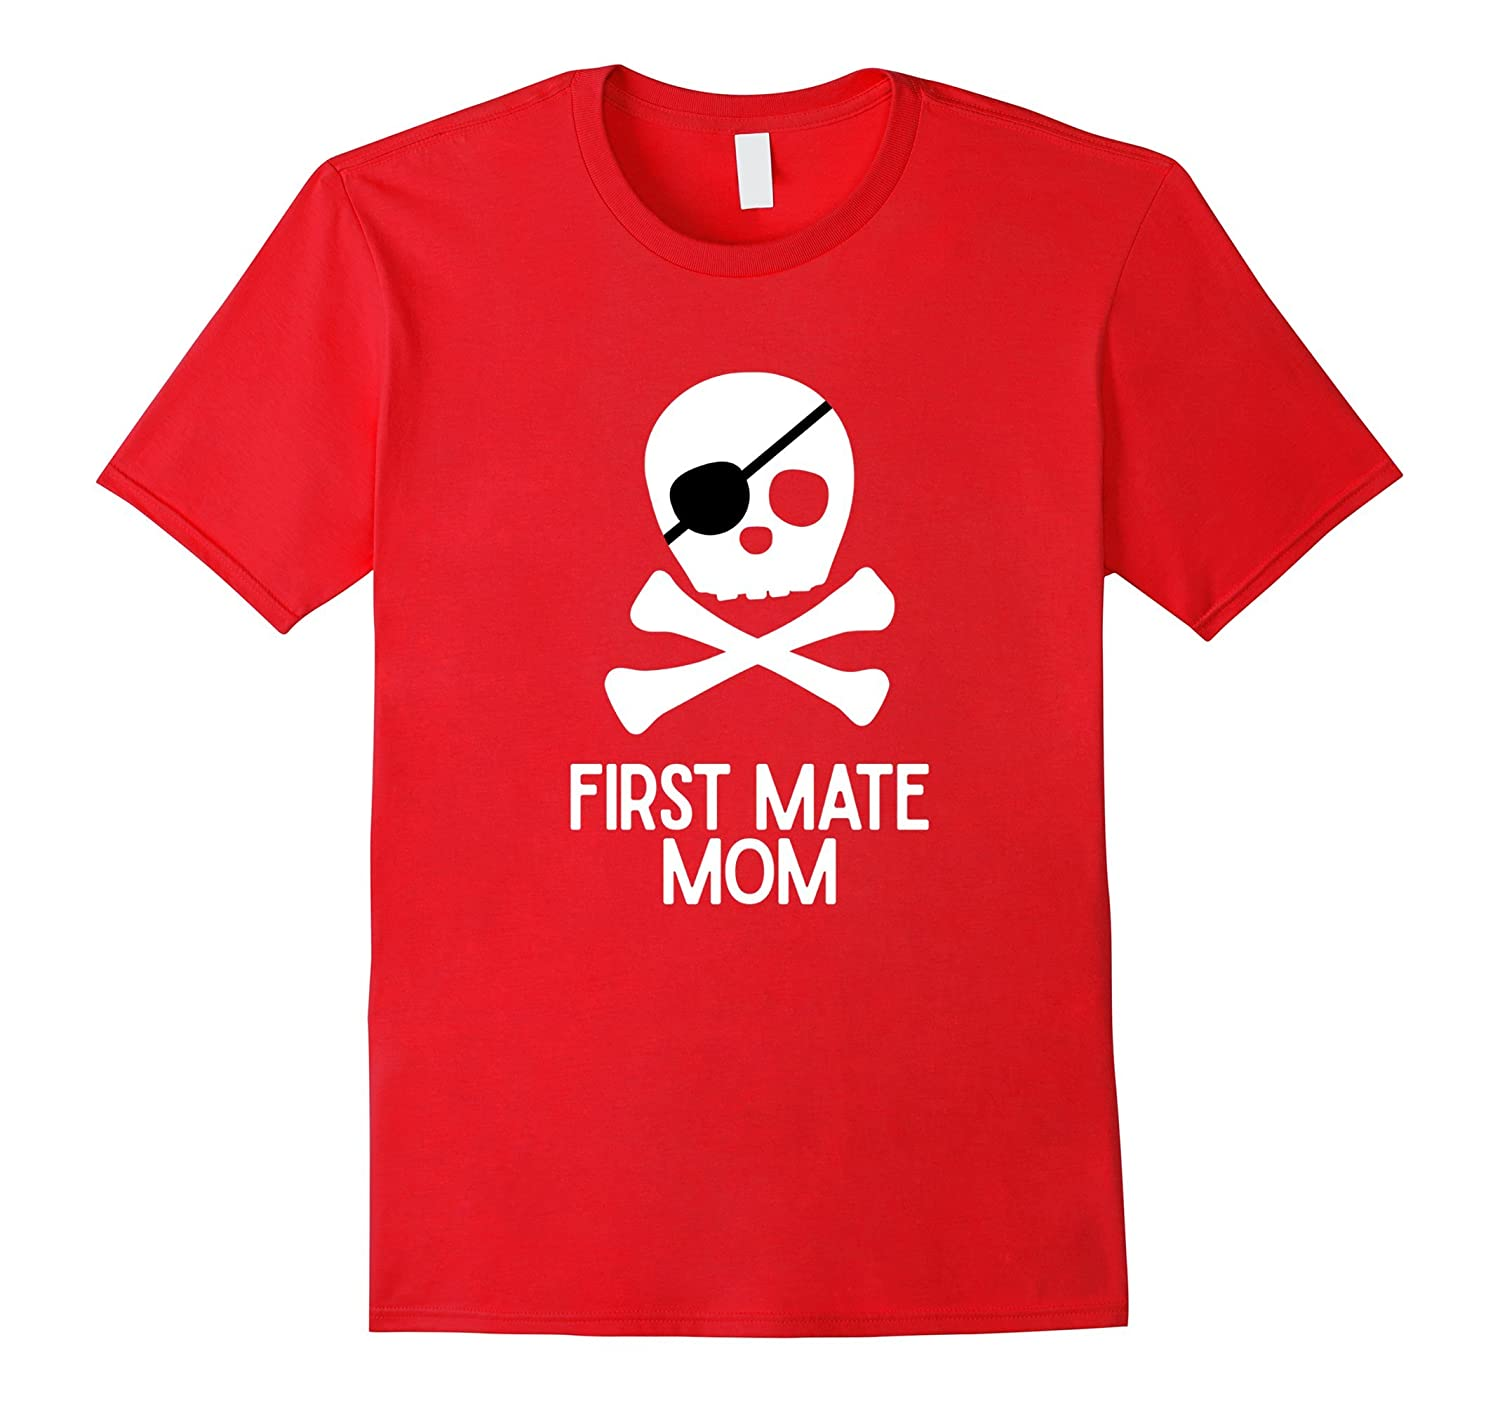 Pirate Mom Shirt First Mate Mom Pirate t-shirt Family Shirts-TD